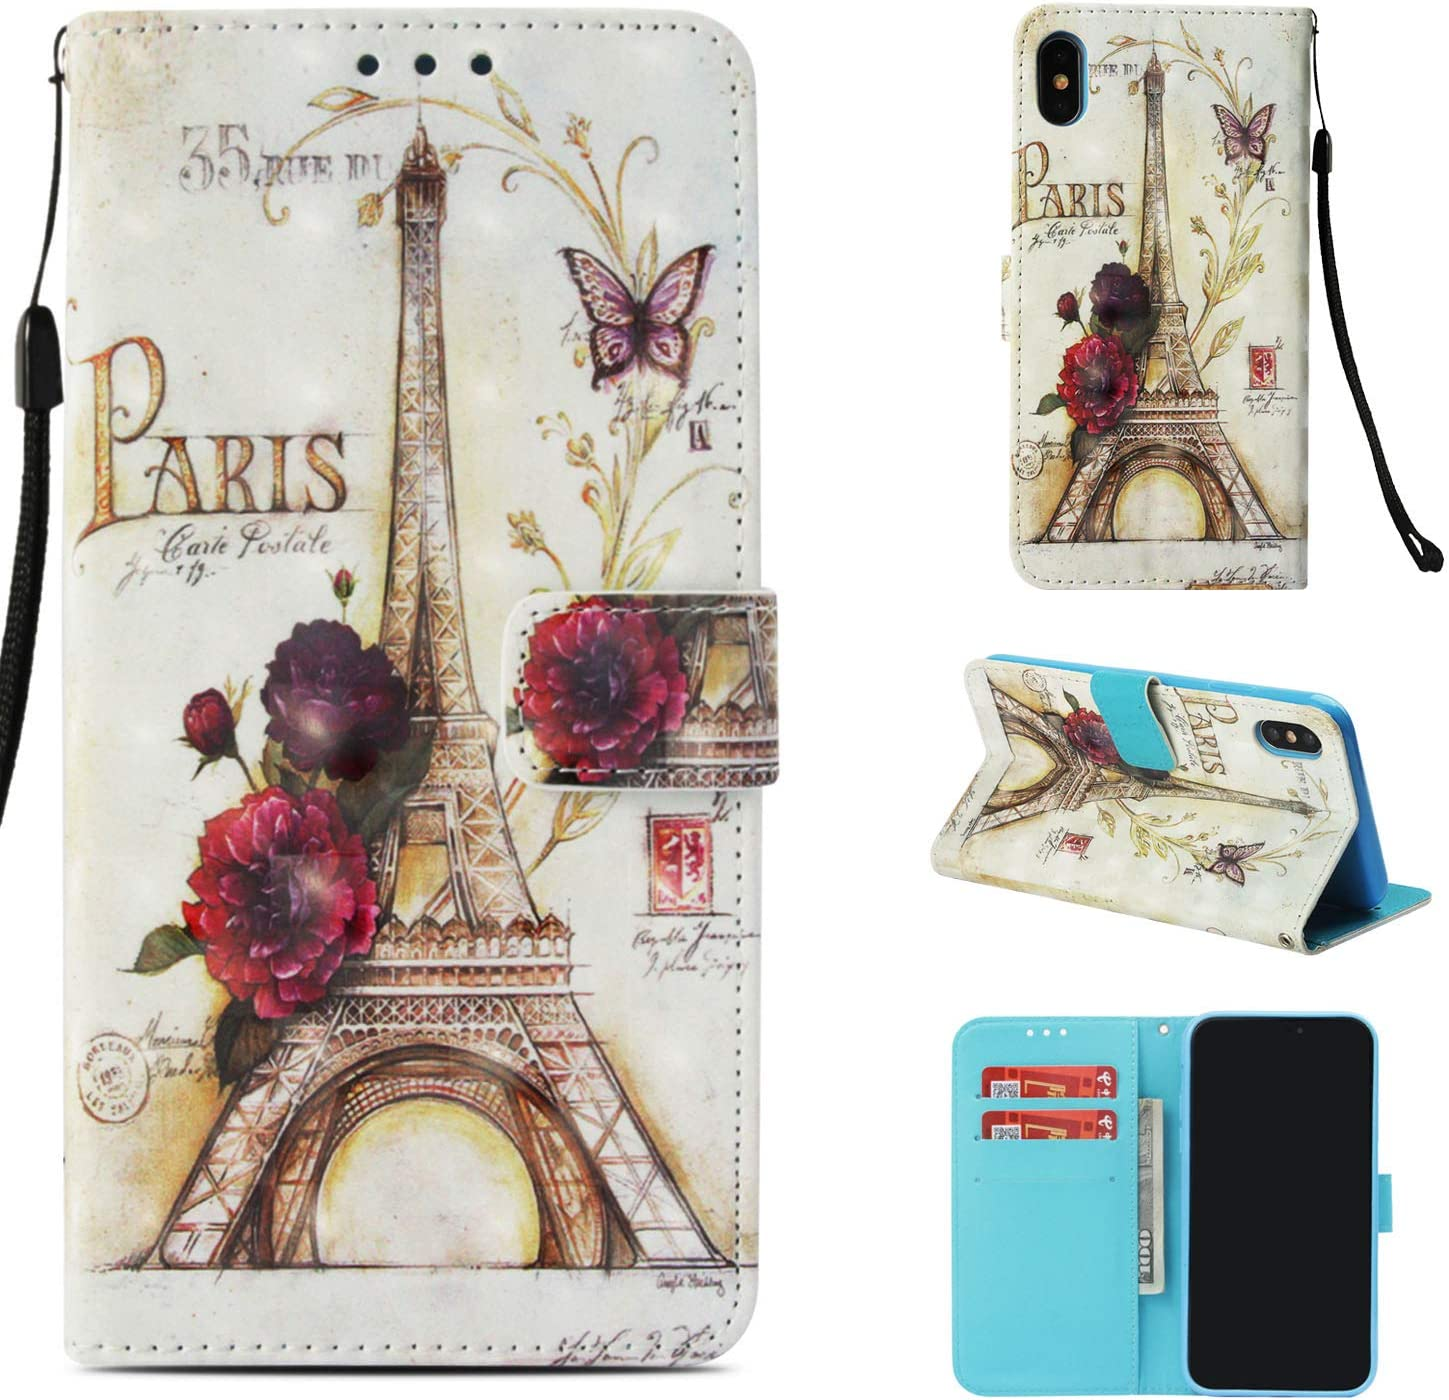 Amocase Wallet Leather Case with 2 in 1 Stylus for iPhone XS Max 6.5 inch,Premium 3D Printed Magnetic PU Leather Card Slot Stand Fold Flip Case with Wrist Strap - Paris Tower